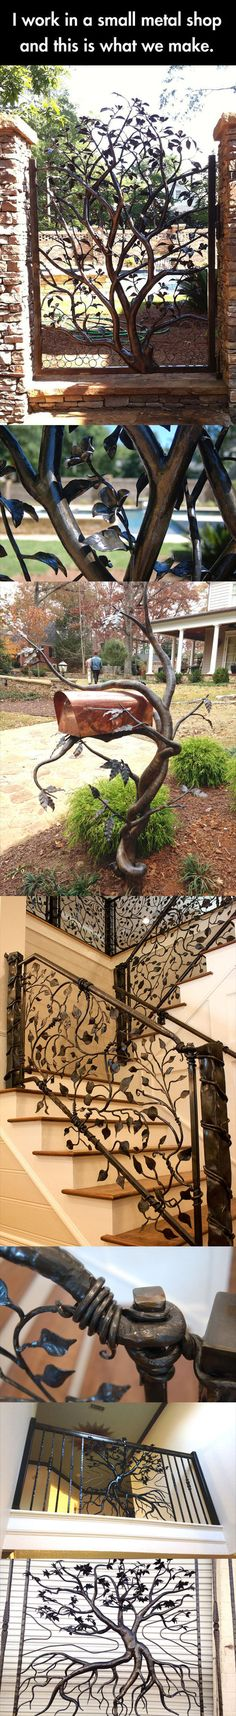 The most amazing metal work I've ever seen!